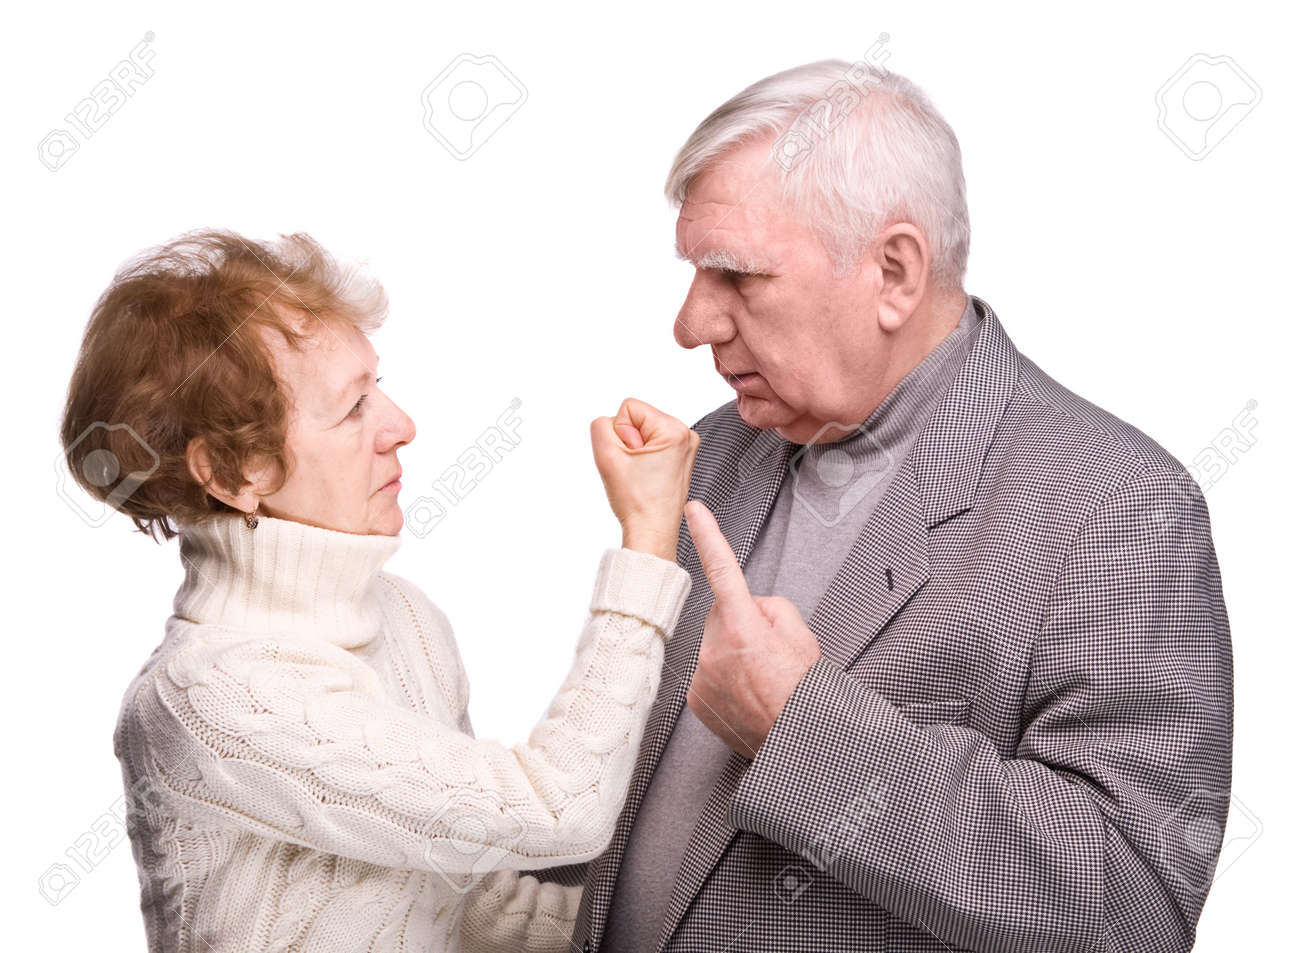 Conflict elderly couple on a white background Stock Photo - 6402562